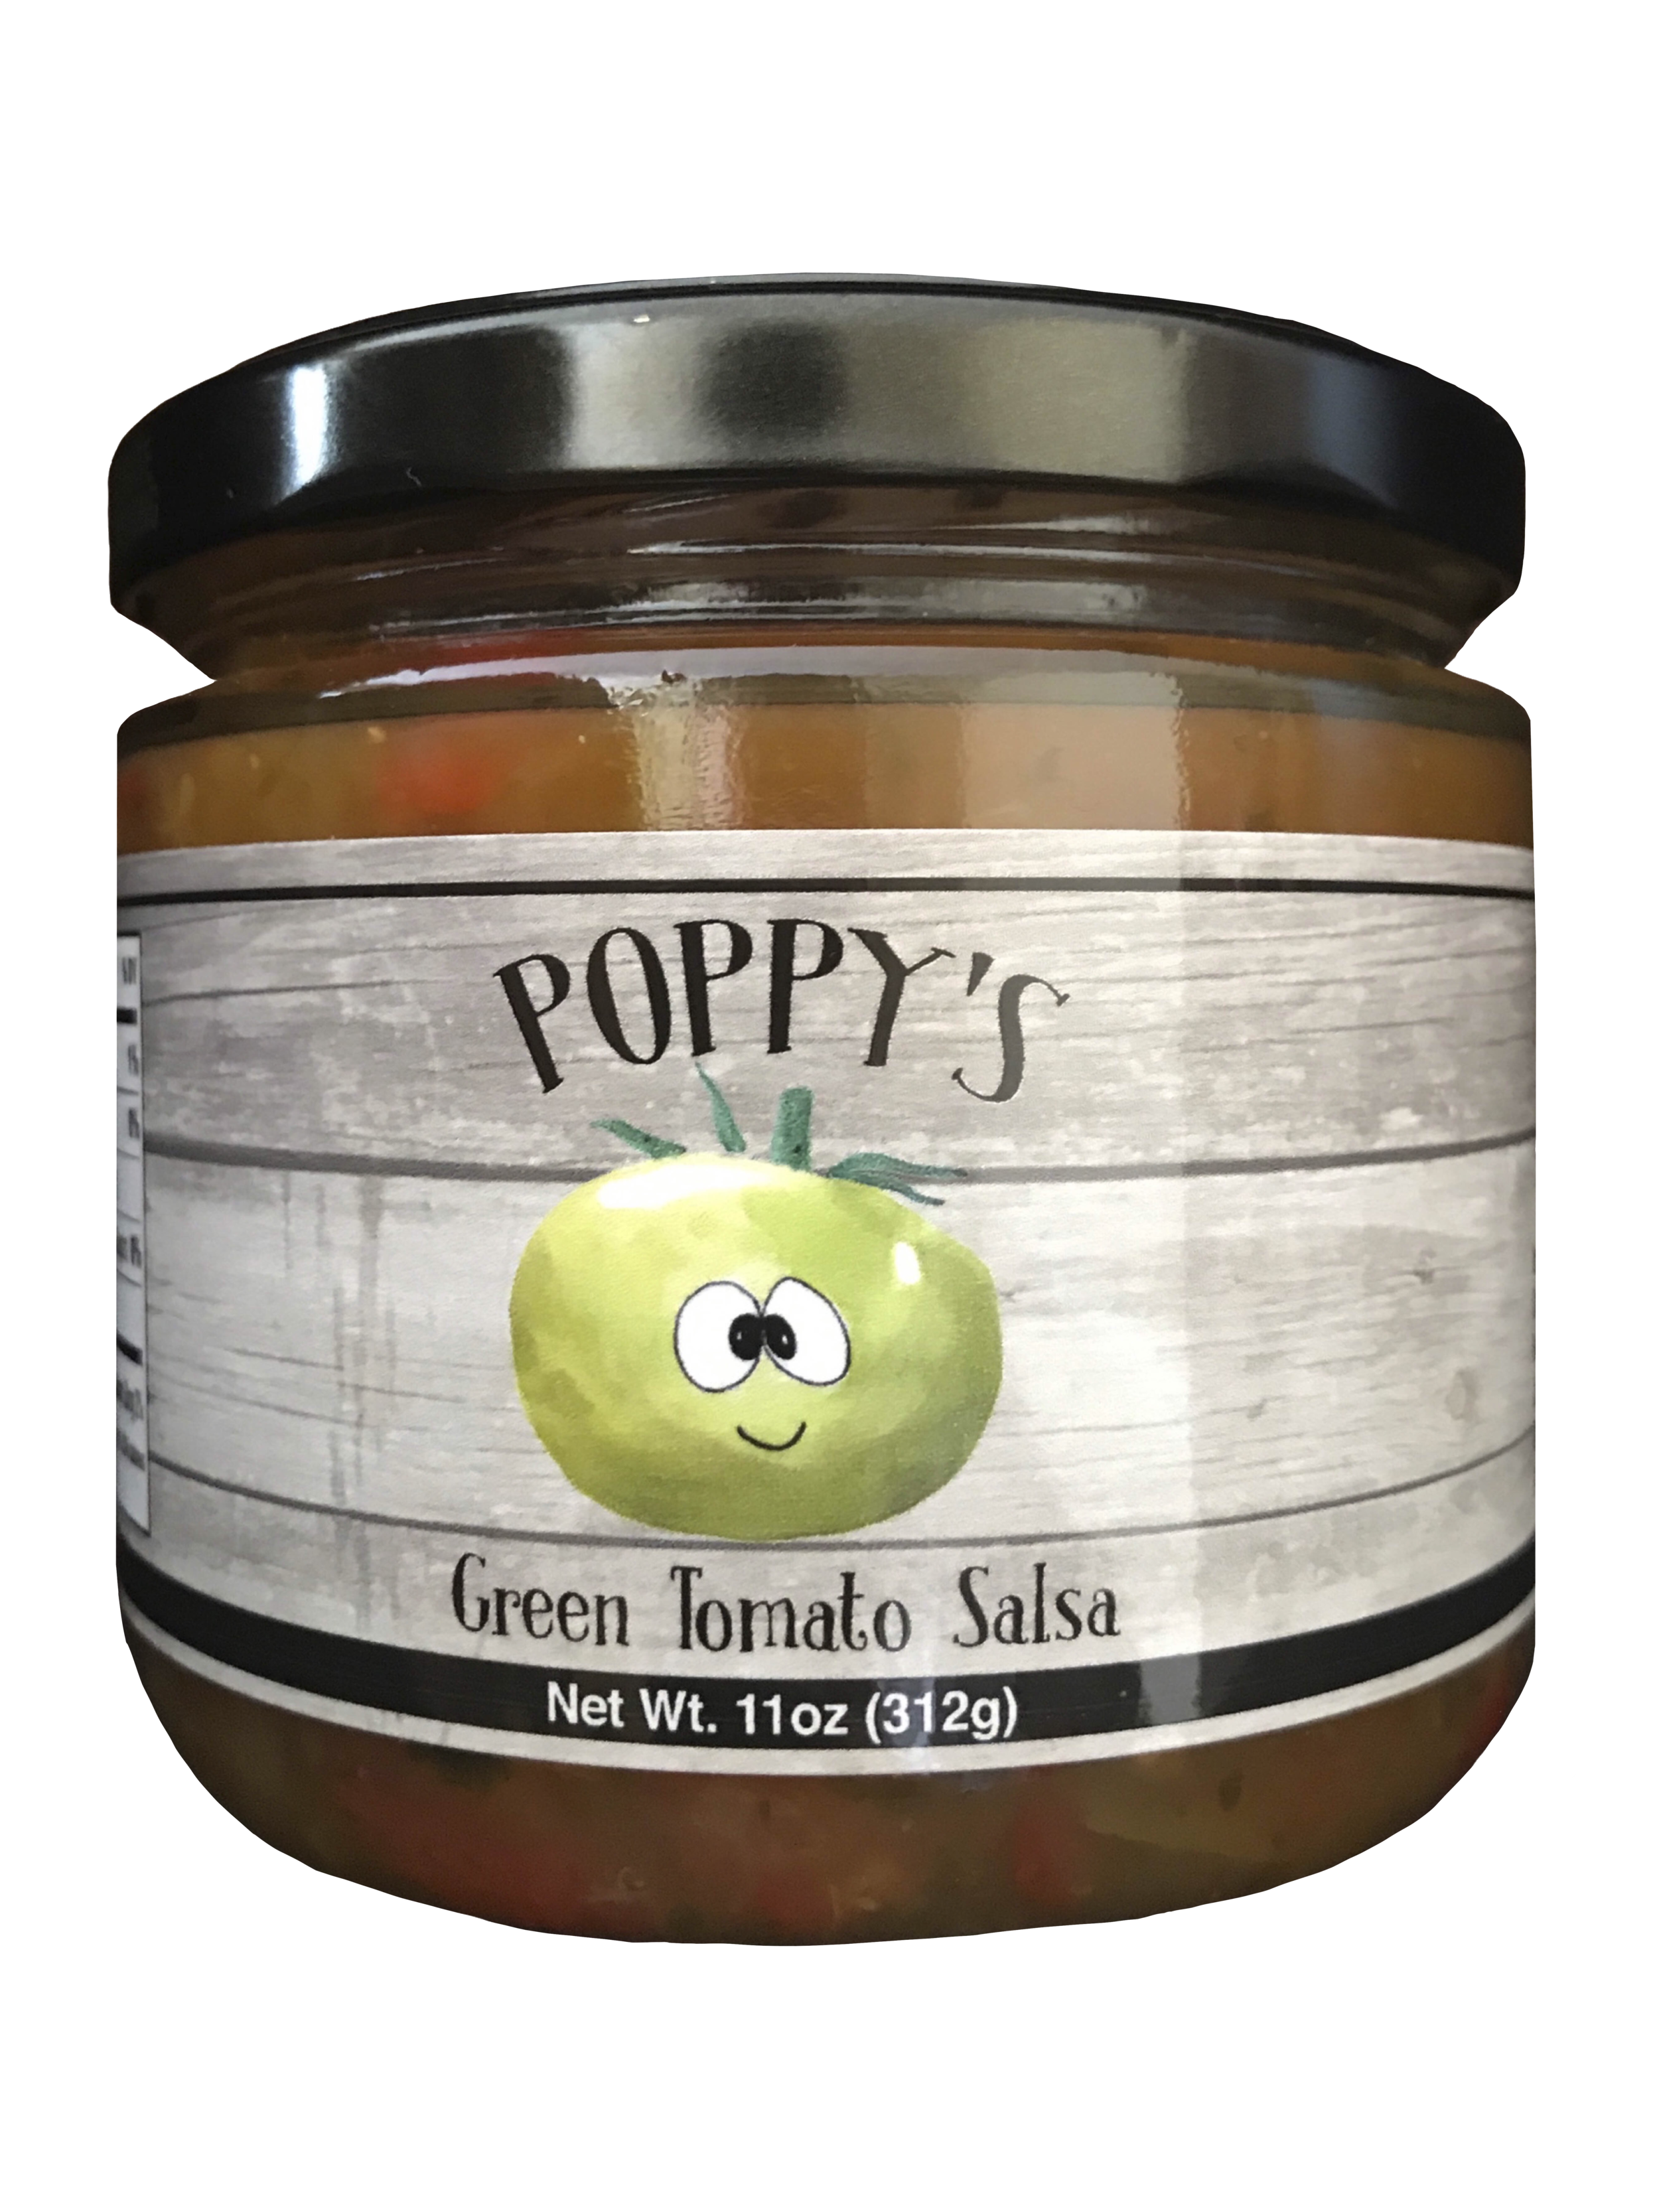 A little about us... - Poppy's is a small family run business based out of Clarksburg, MD. Our philosophy is that natural ingredients simply just taste better. Poppy's signature Green Tomato Salsa is a truly unique approach to a classic pantry staple. Tart green tomatoes, fresh garden vegetables, and slow roasted jalapenos add just the right amount of heat to make this salsa a welcome accompaniment for any household. We, as a company and a family, are excited to share Poppy's with you so let us bring our love of food to you by stocking your shelves with Poppy's Green Tomato Salsa.